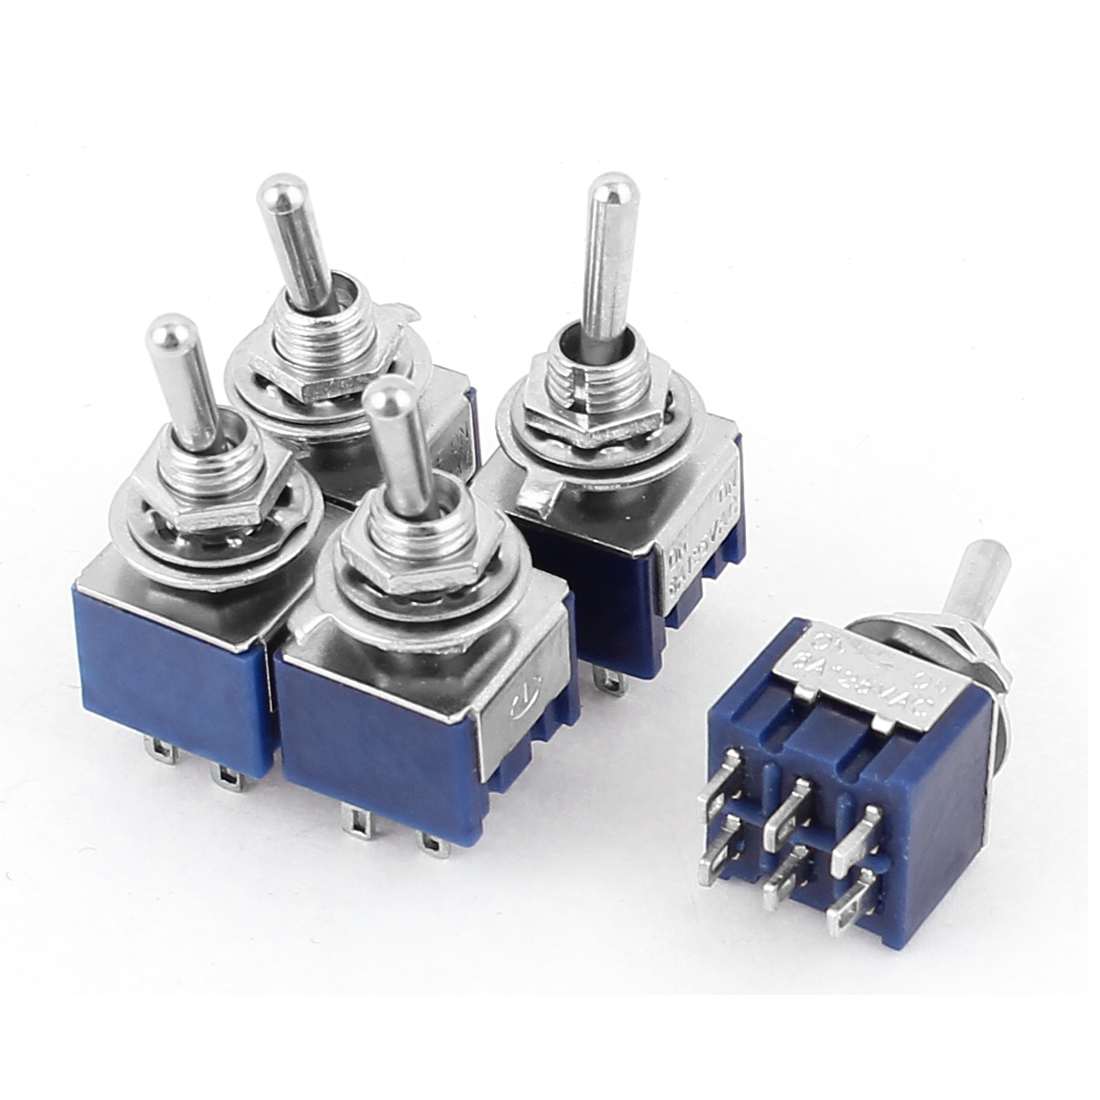 AC 125V 6A 6 Pins ON-ON 2 Positions DPDT Toggle Switch Dark Blue 5pcs